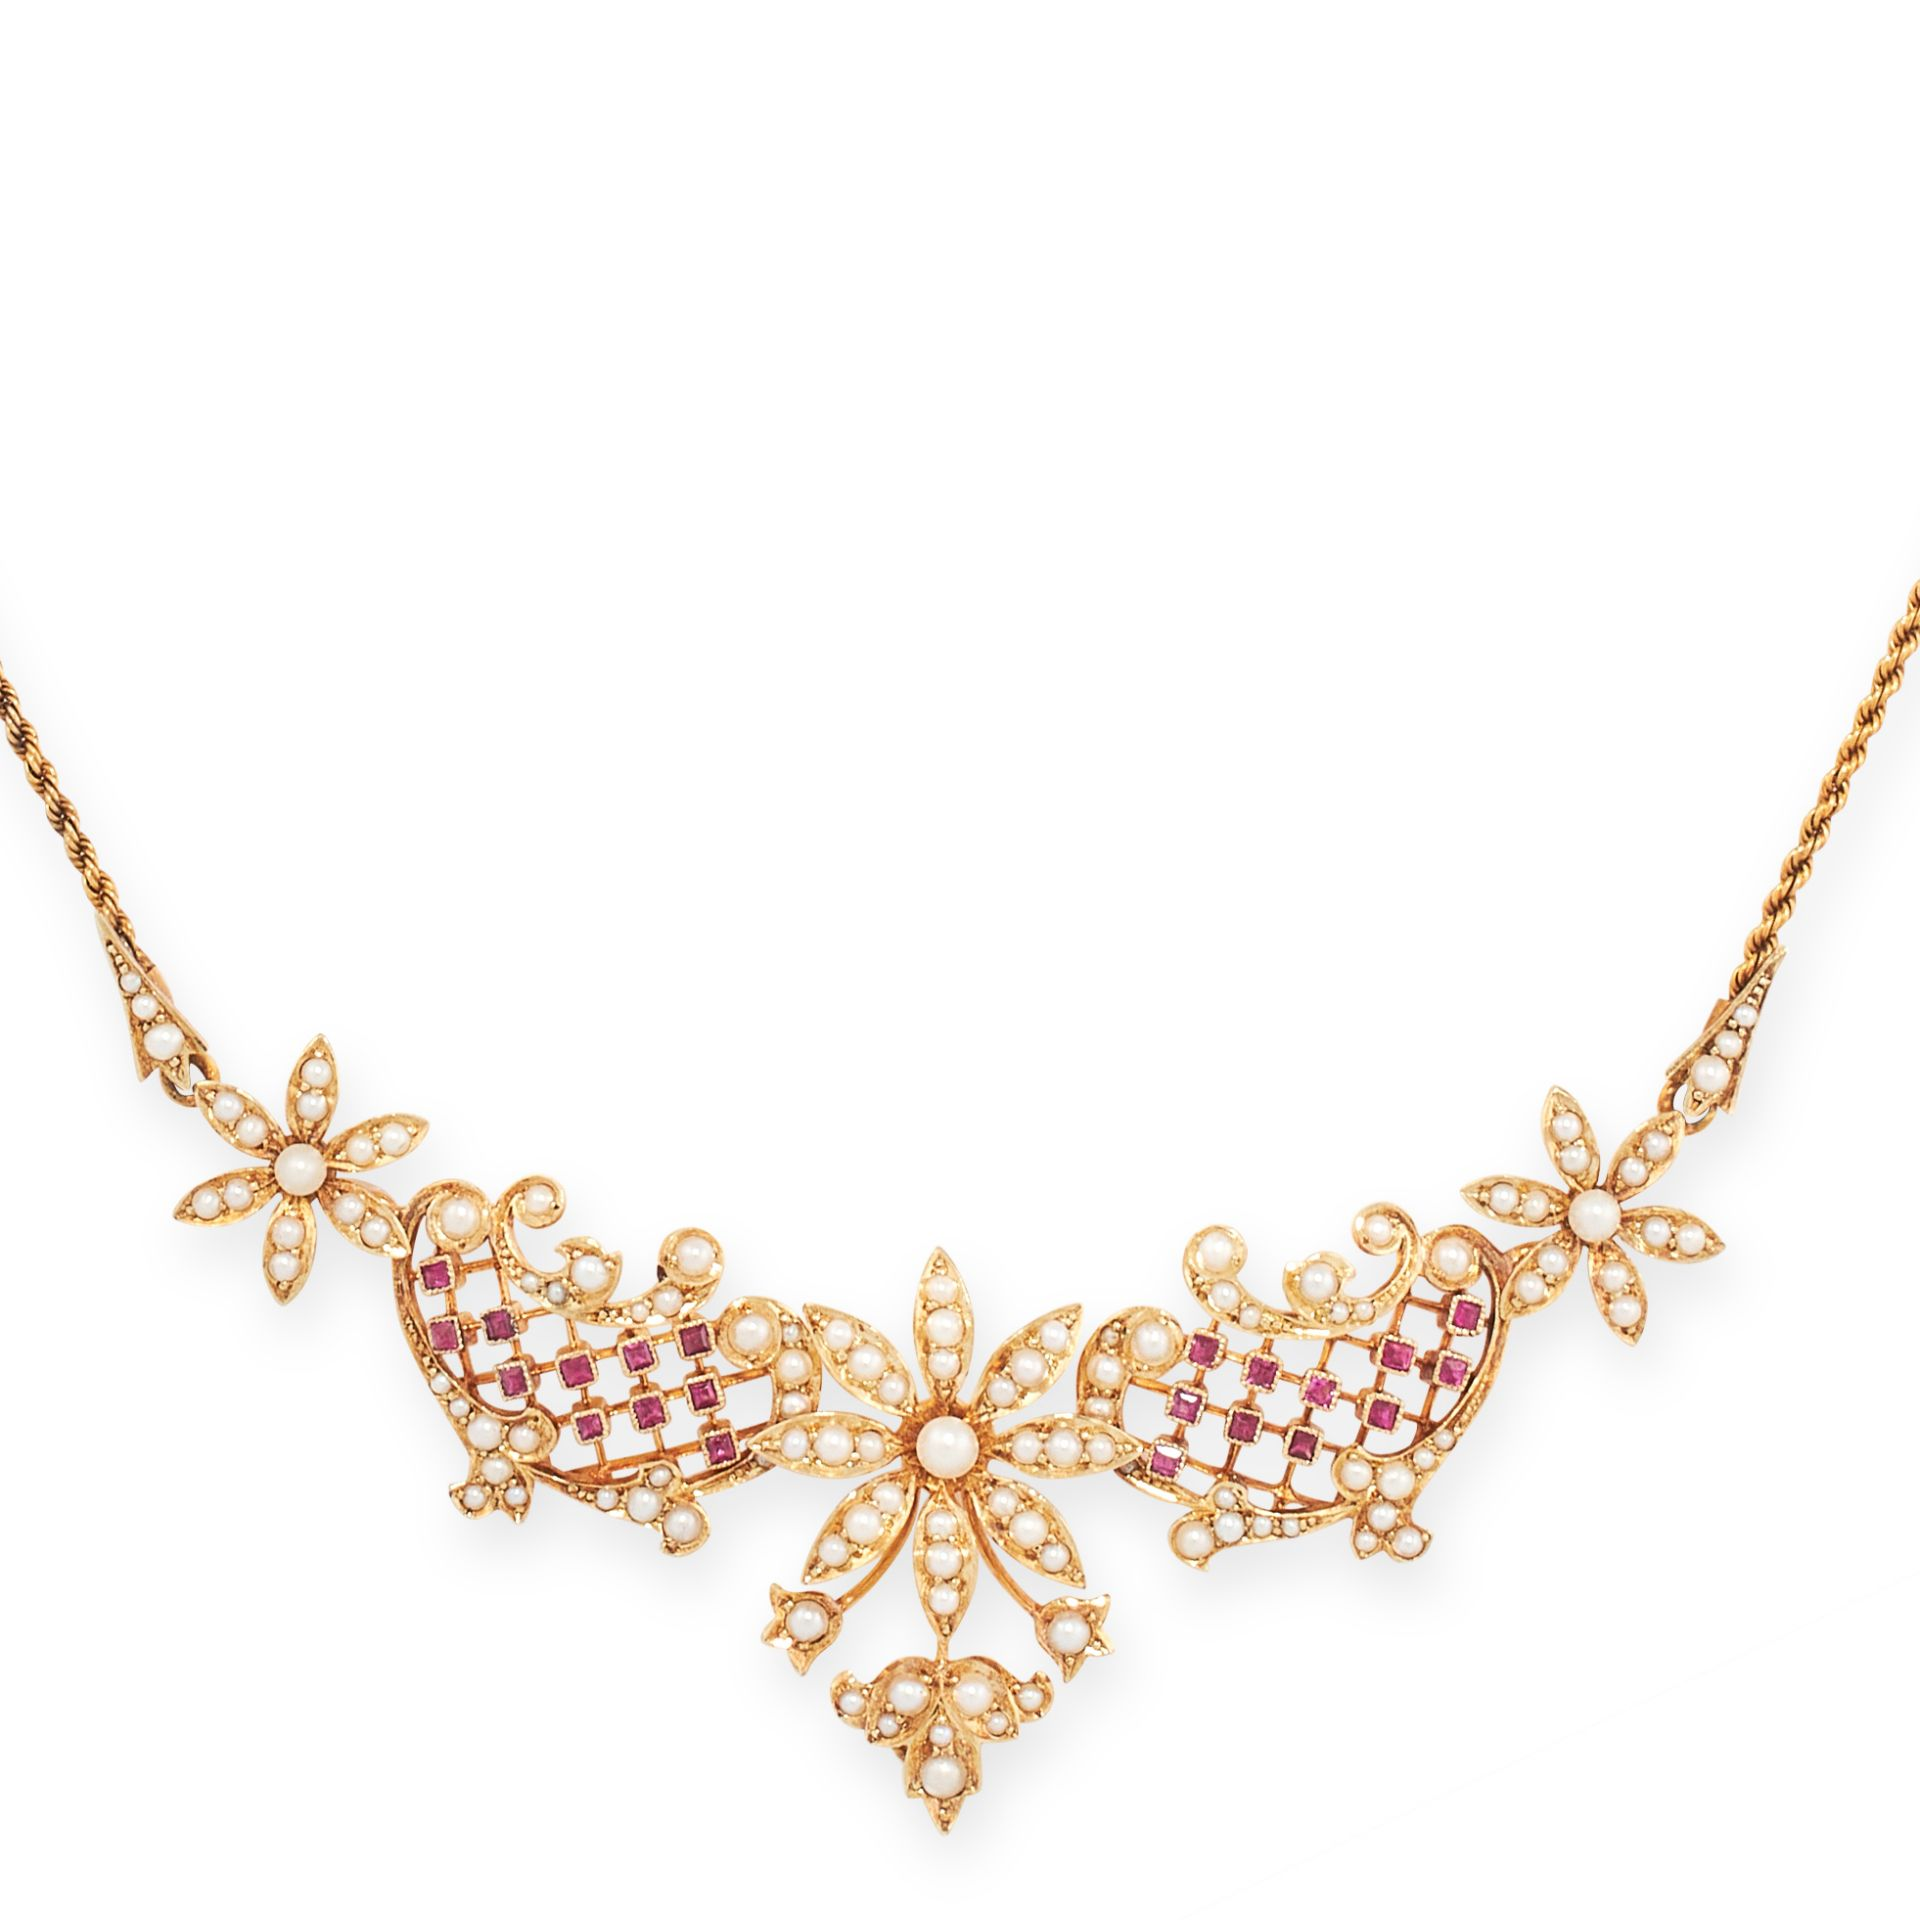 AN ANTIQUE RUBY AND PEARL NECKLACE, 19TH CENTURY in 15ct yellow gold, designed as a trio of